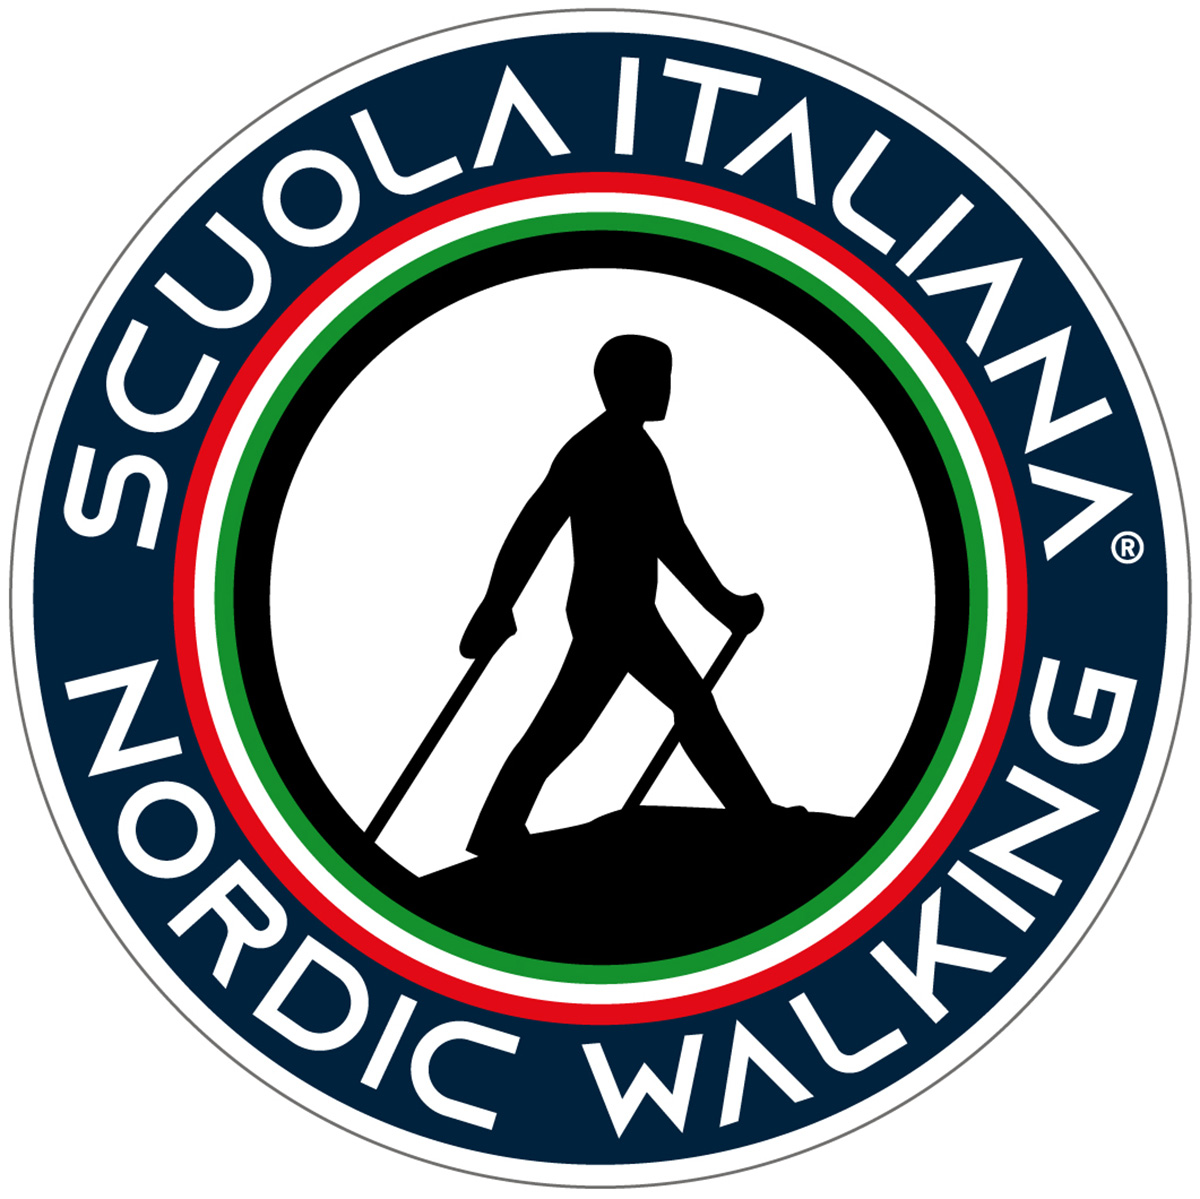 The wild Side - logo scuola nordic walking